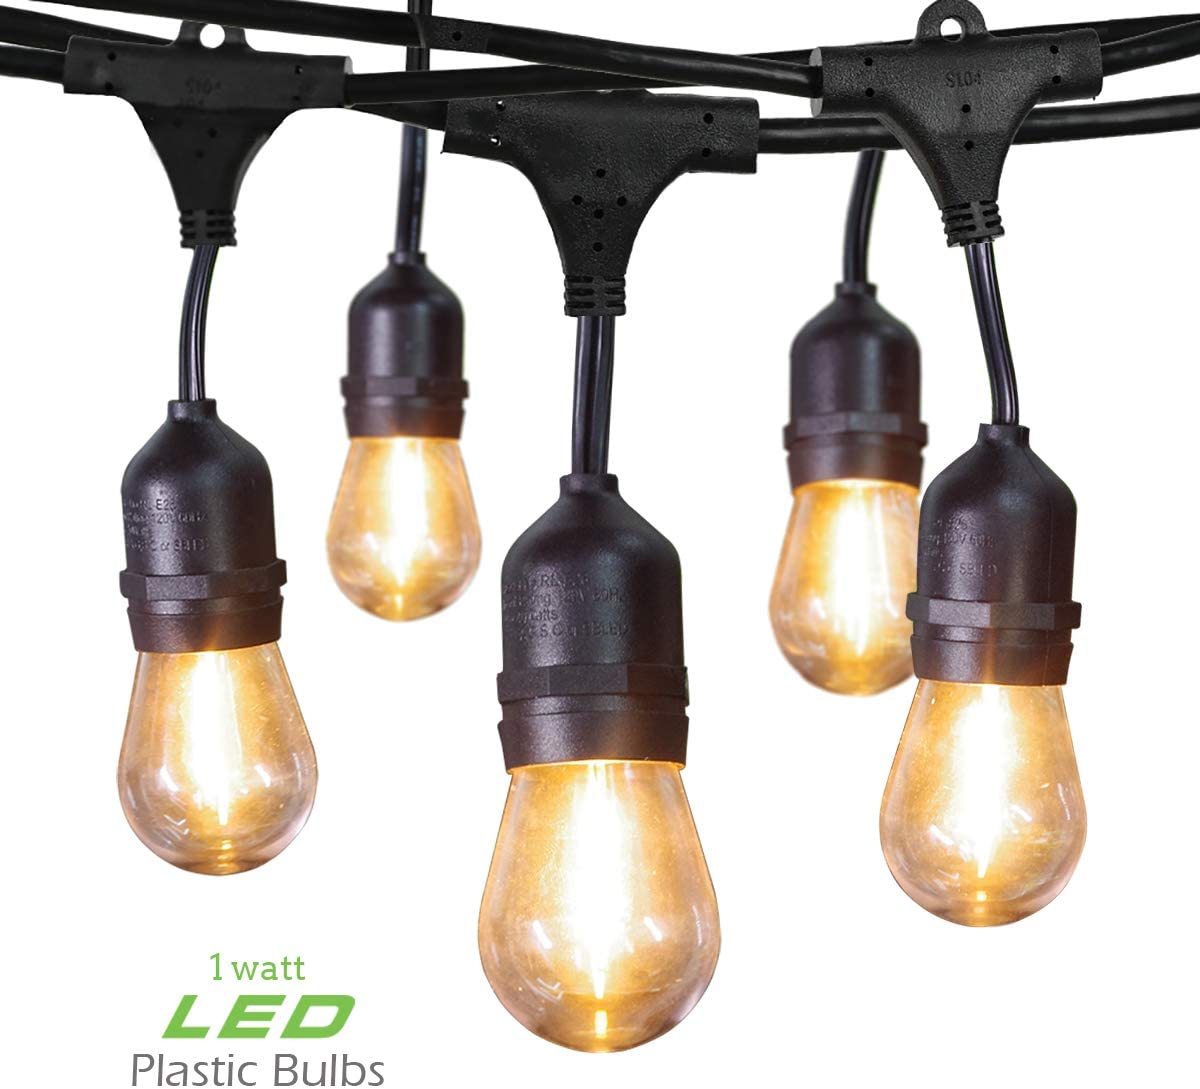 Jslinter Outdoor String Lights 48 Ft UL Listed Commercial Grade Waterproof IP65 Hanging Light with Weatherproof 1 Watt S14 LED Edison Bulbs, Create Party for Patio, Backyard, Porch, Yard, Bistro